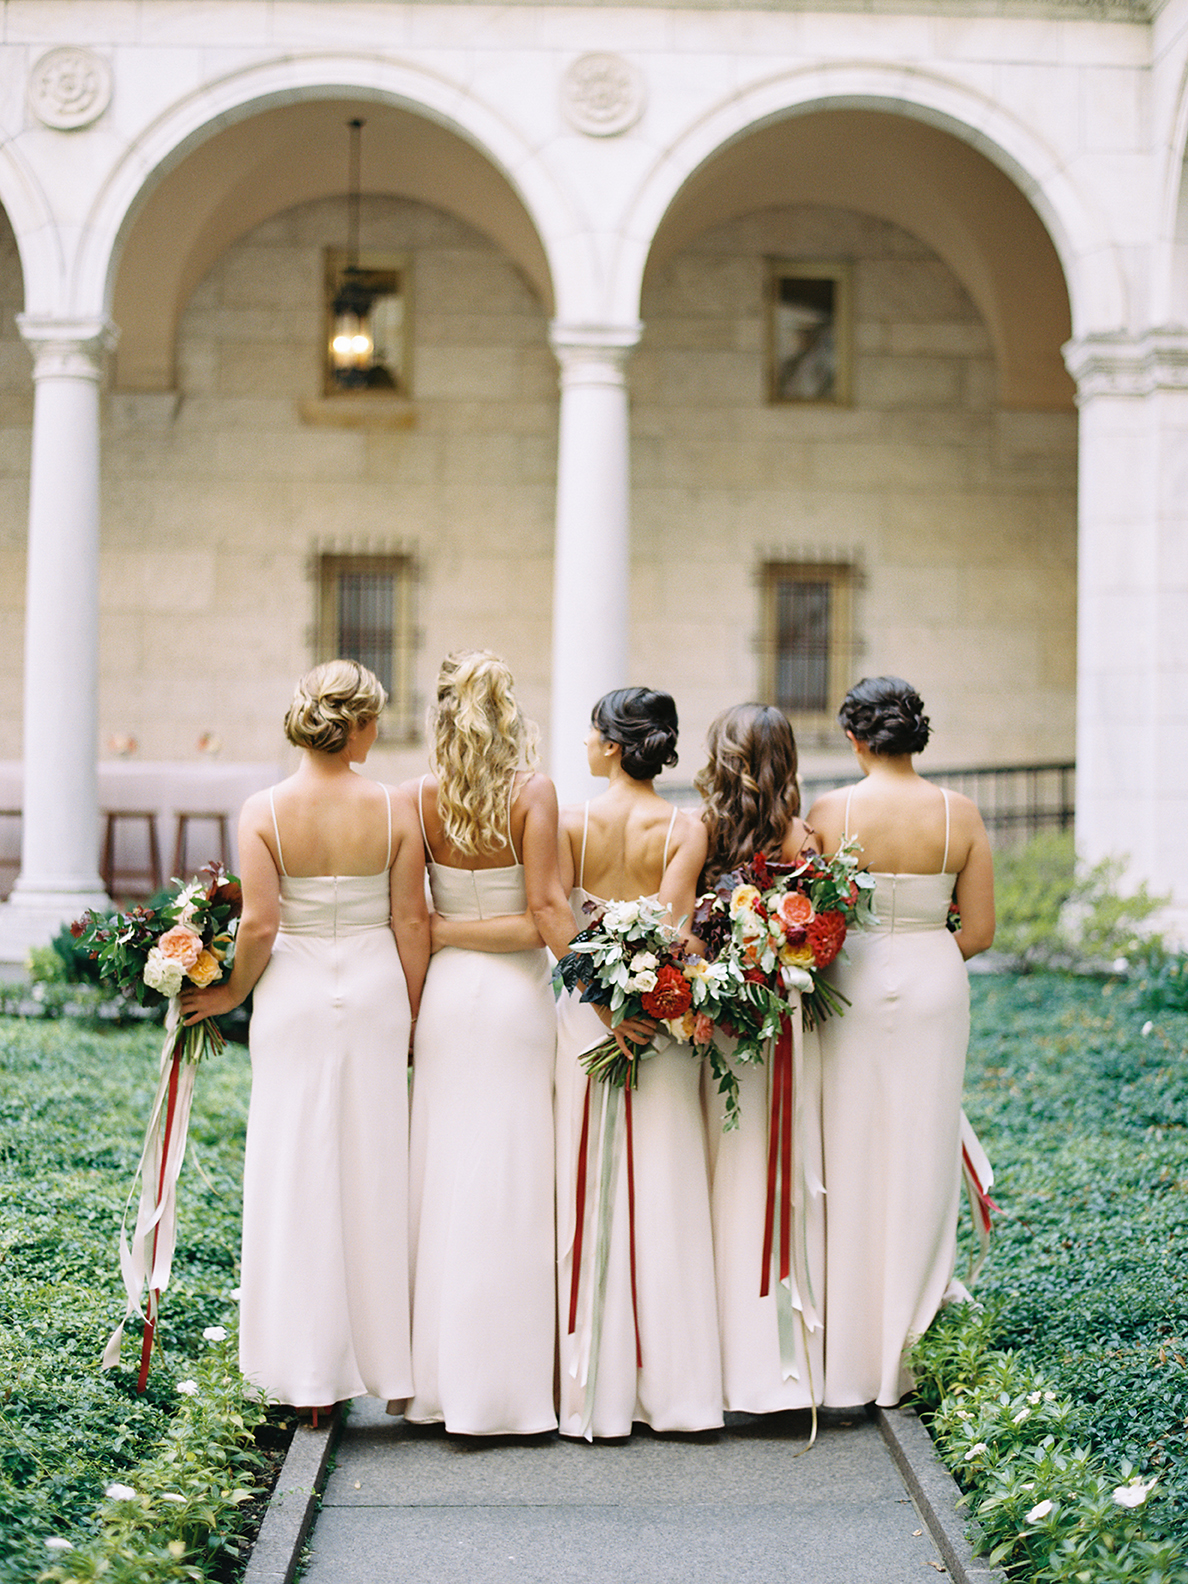 455_Kent+Katie_Fine_Art_Film_Photography_Boston_Public_Library_Wedding_Brumley & Wells.jpg